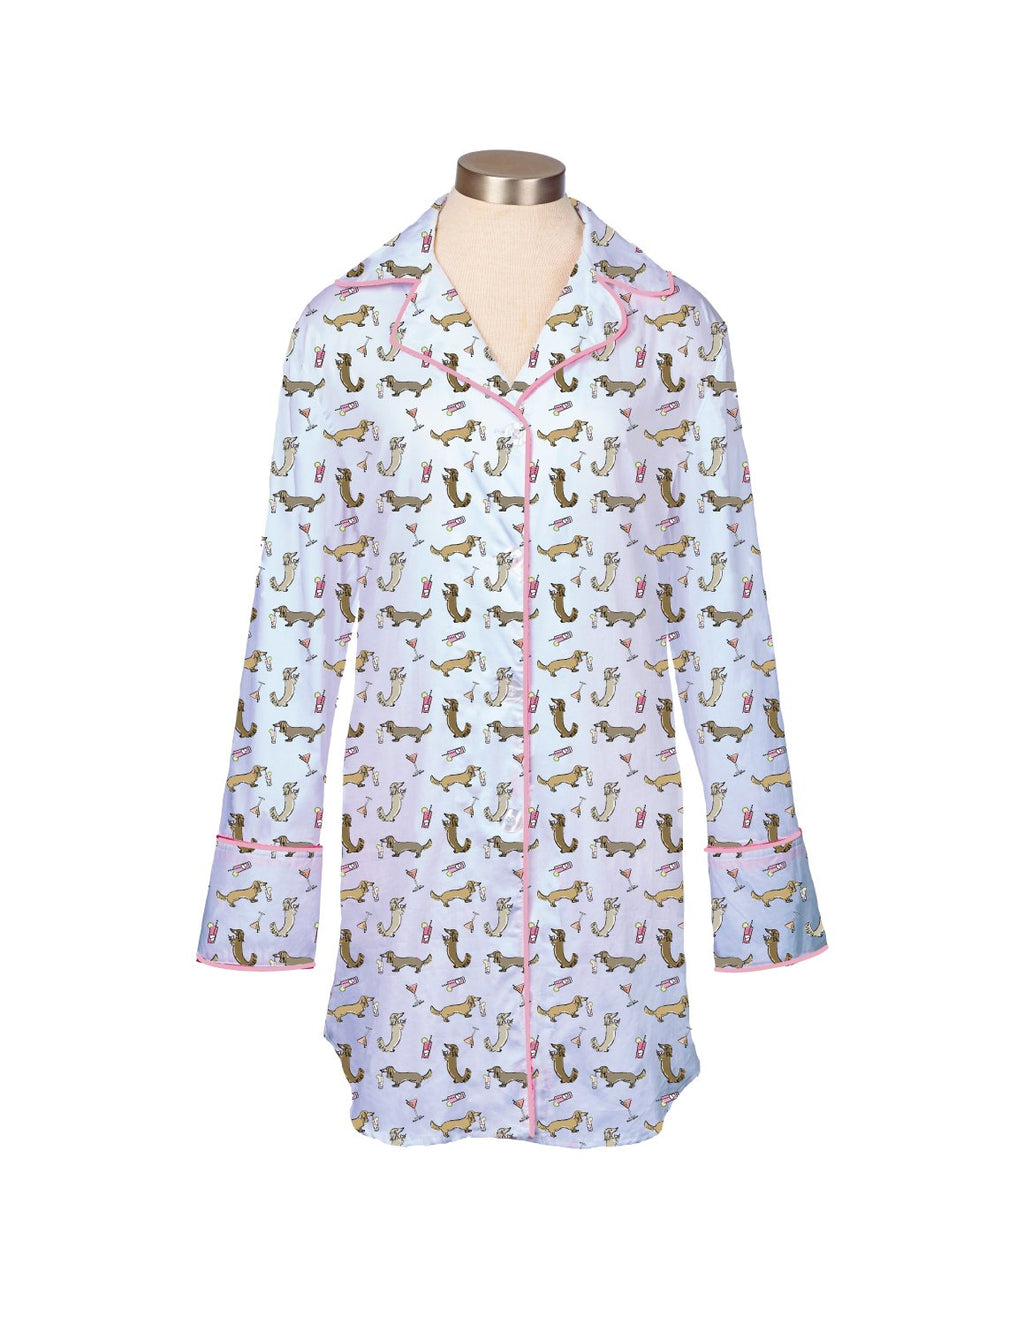 Cocktail Weenies Pajama Nightshirt